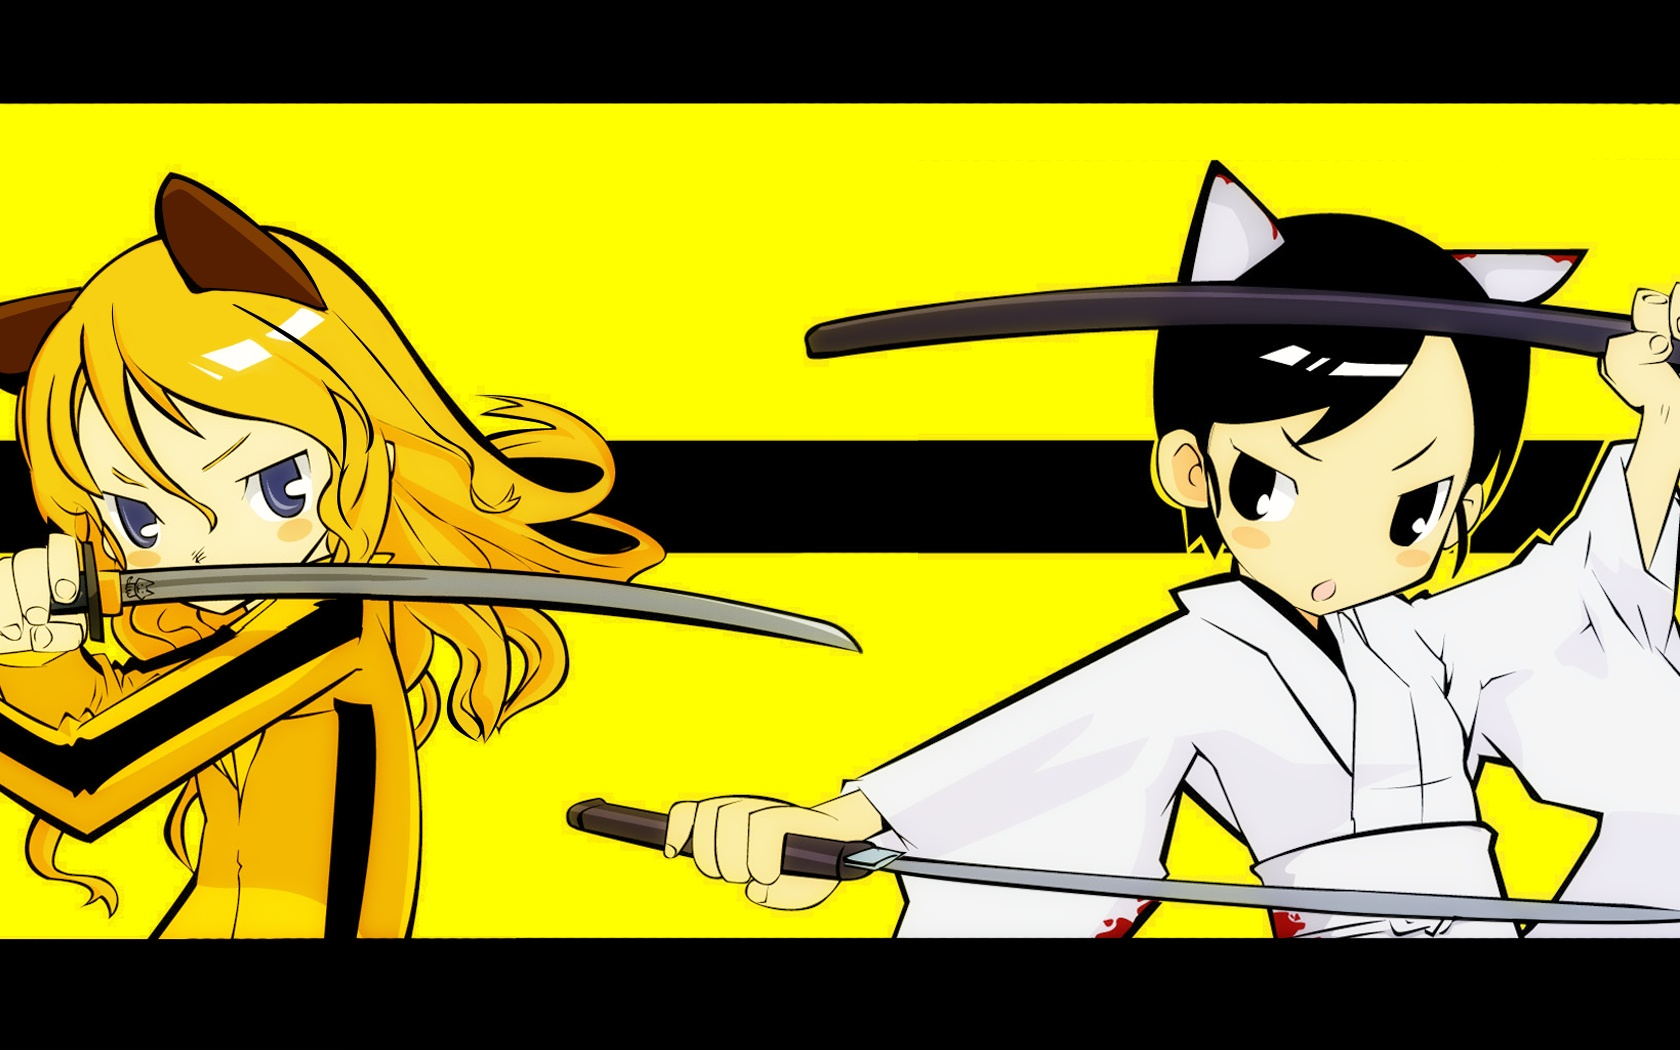 Kill Bill nekomimi alternative HD Wallpaper